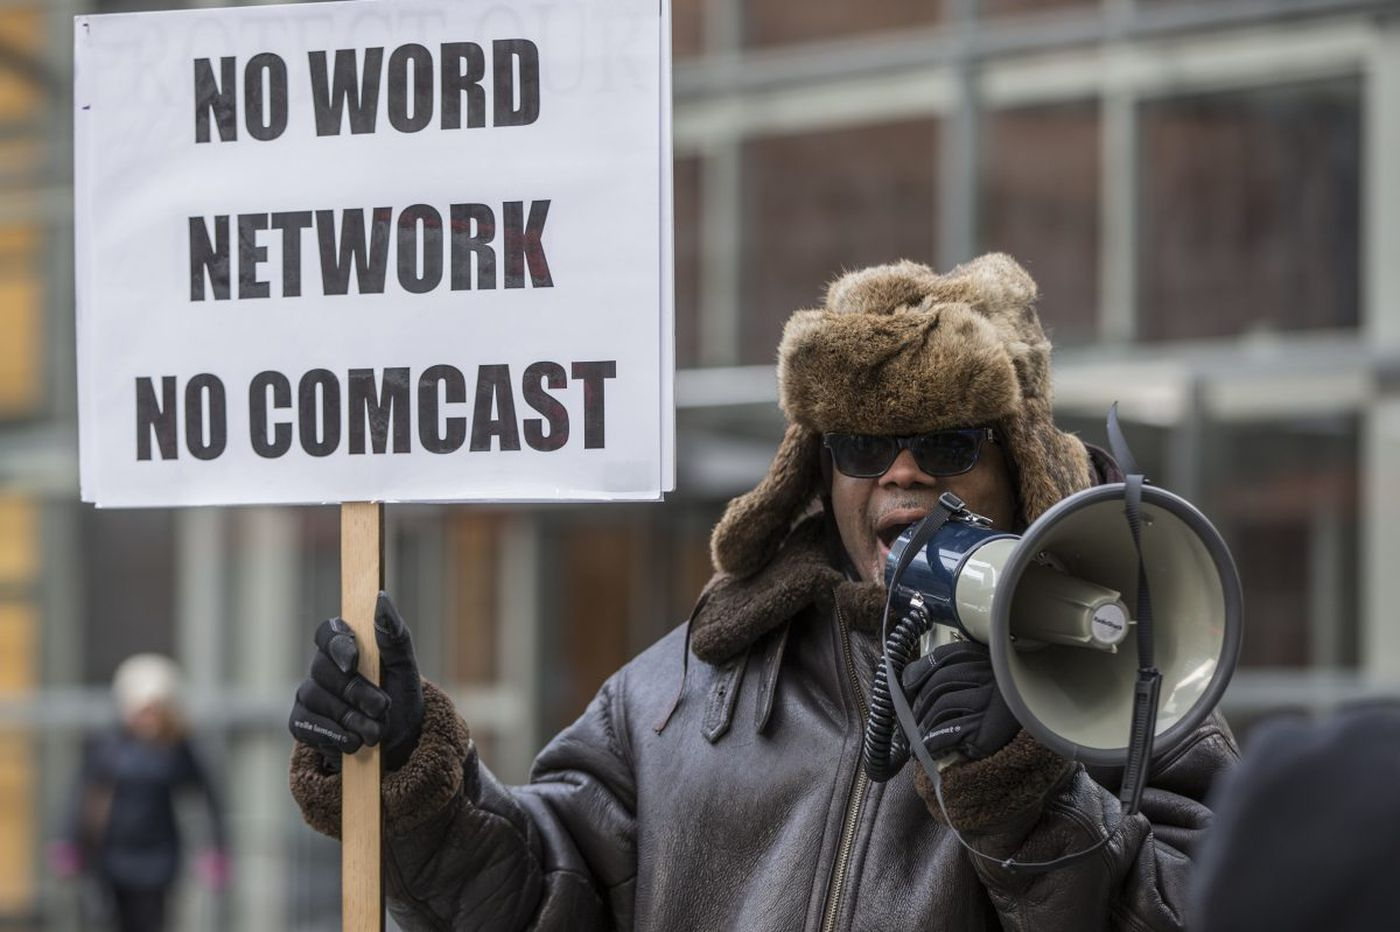 Comcast gets the last word from FCC against Word Network